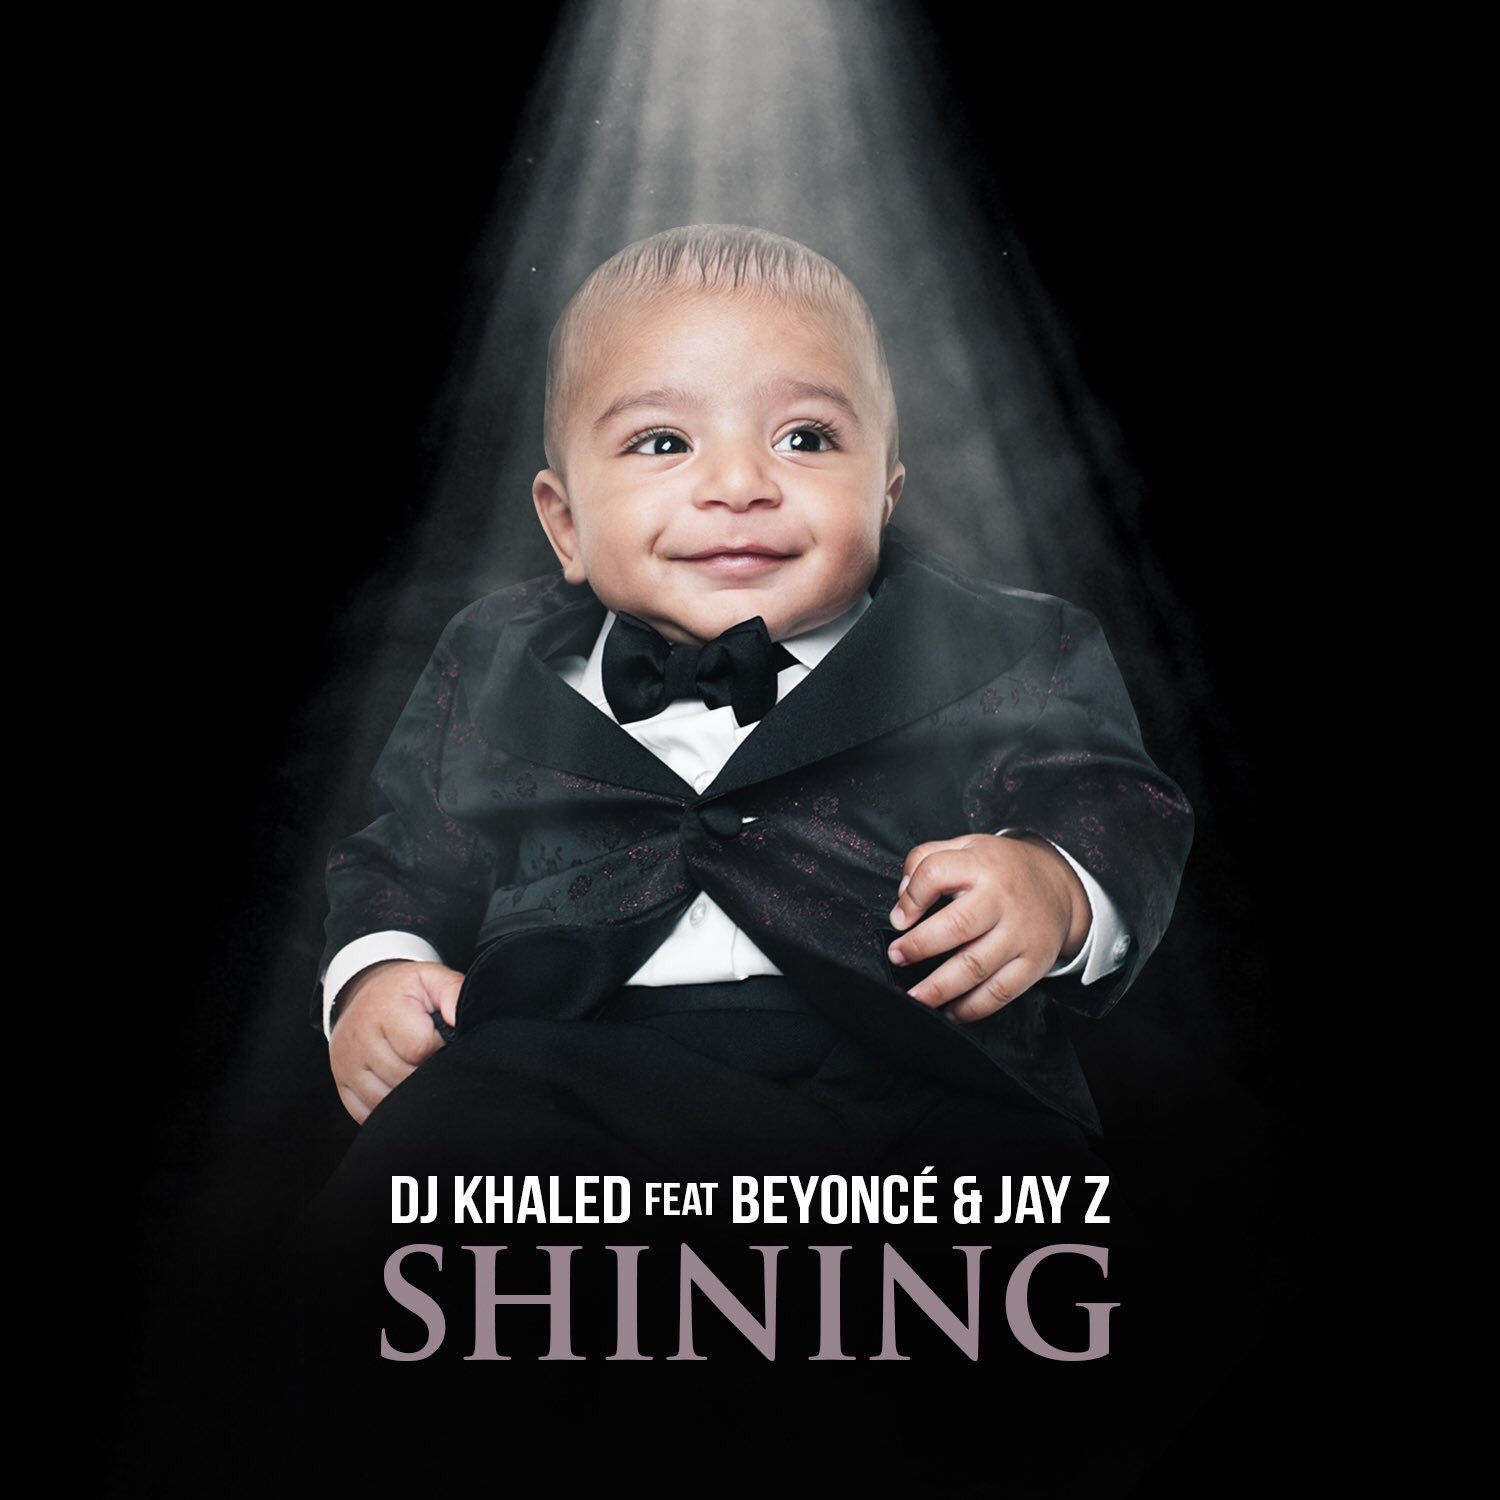 @djkhaled's new single 'Shining' feat. @Beyonce & JAY Z is Available Now! https://t.co/7nNYSAfoKT https://t.co/yqHmkvOGcf